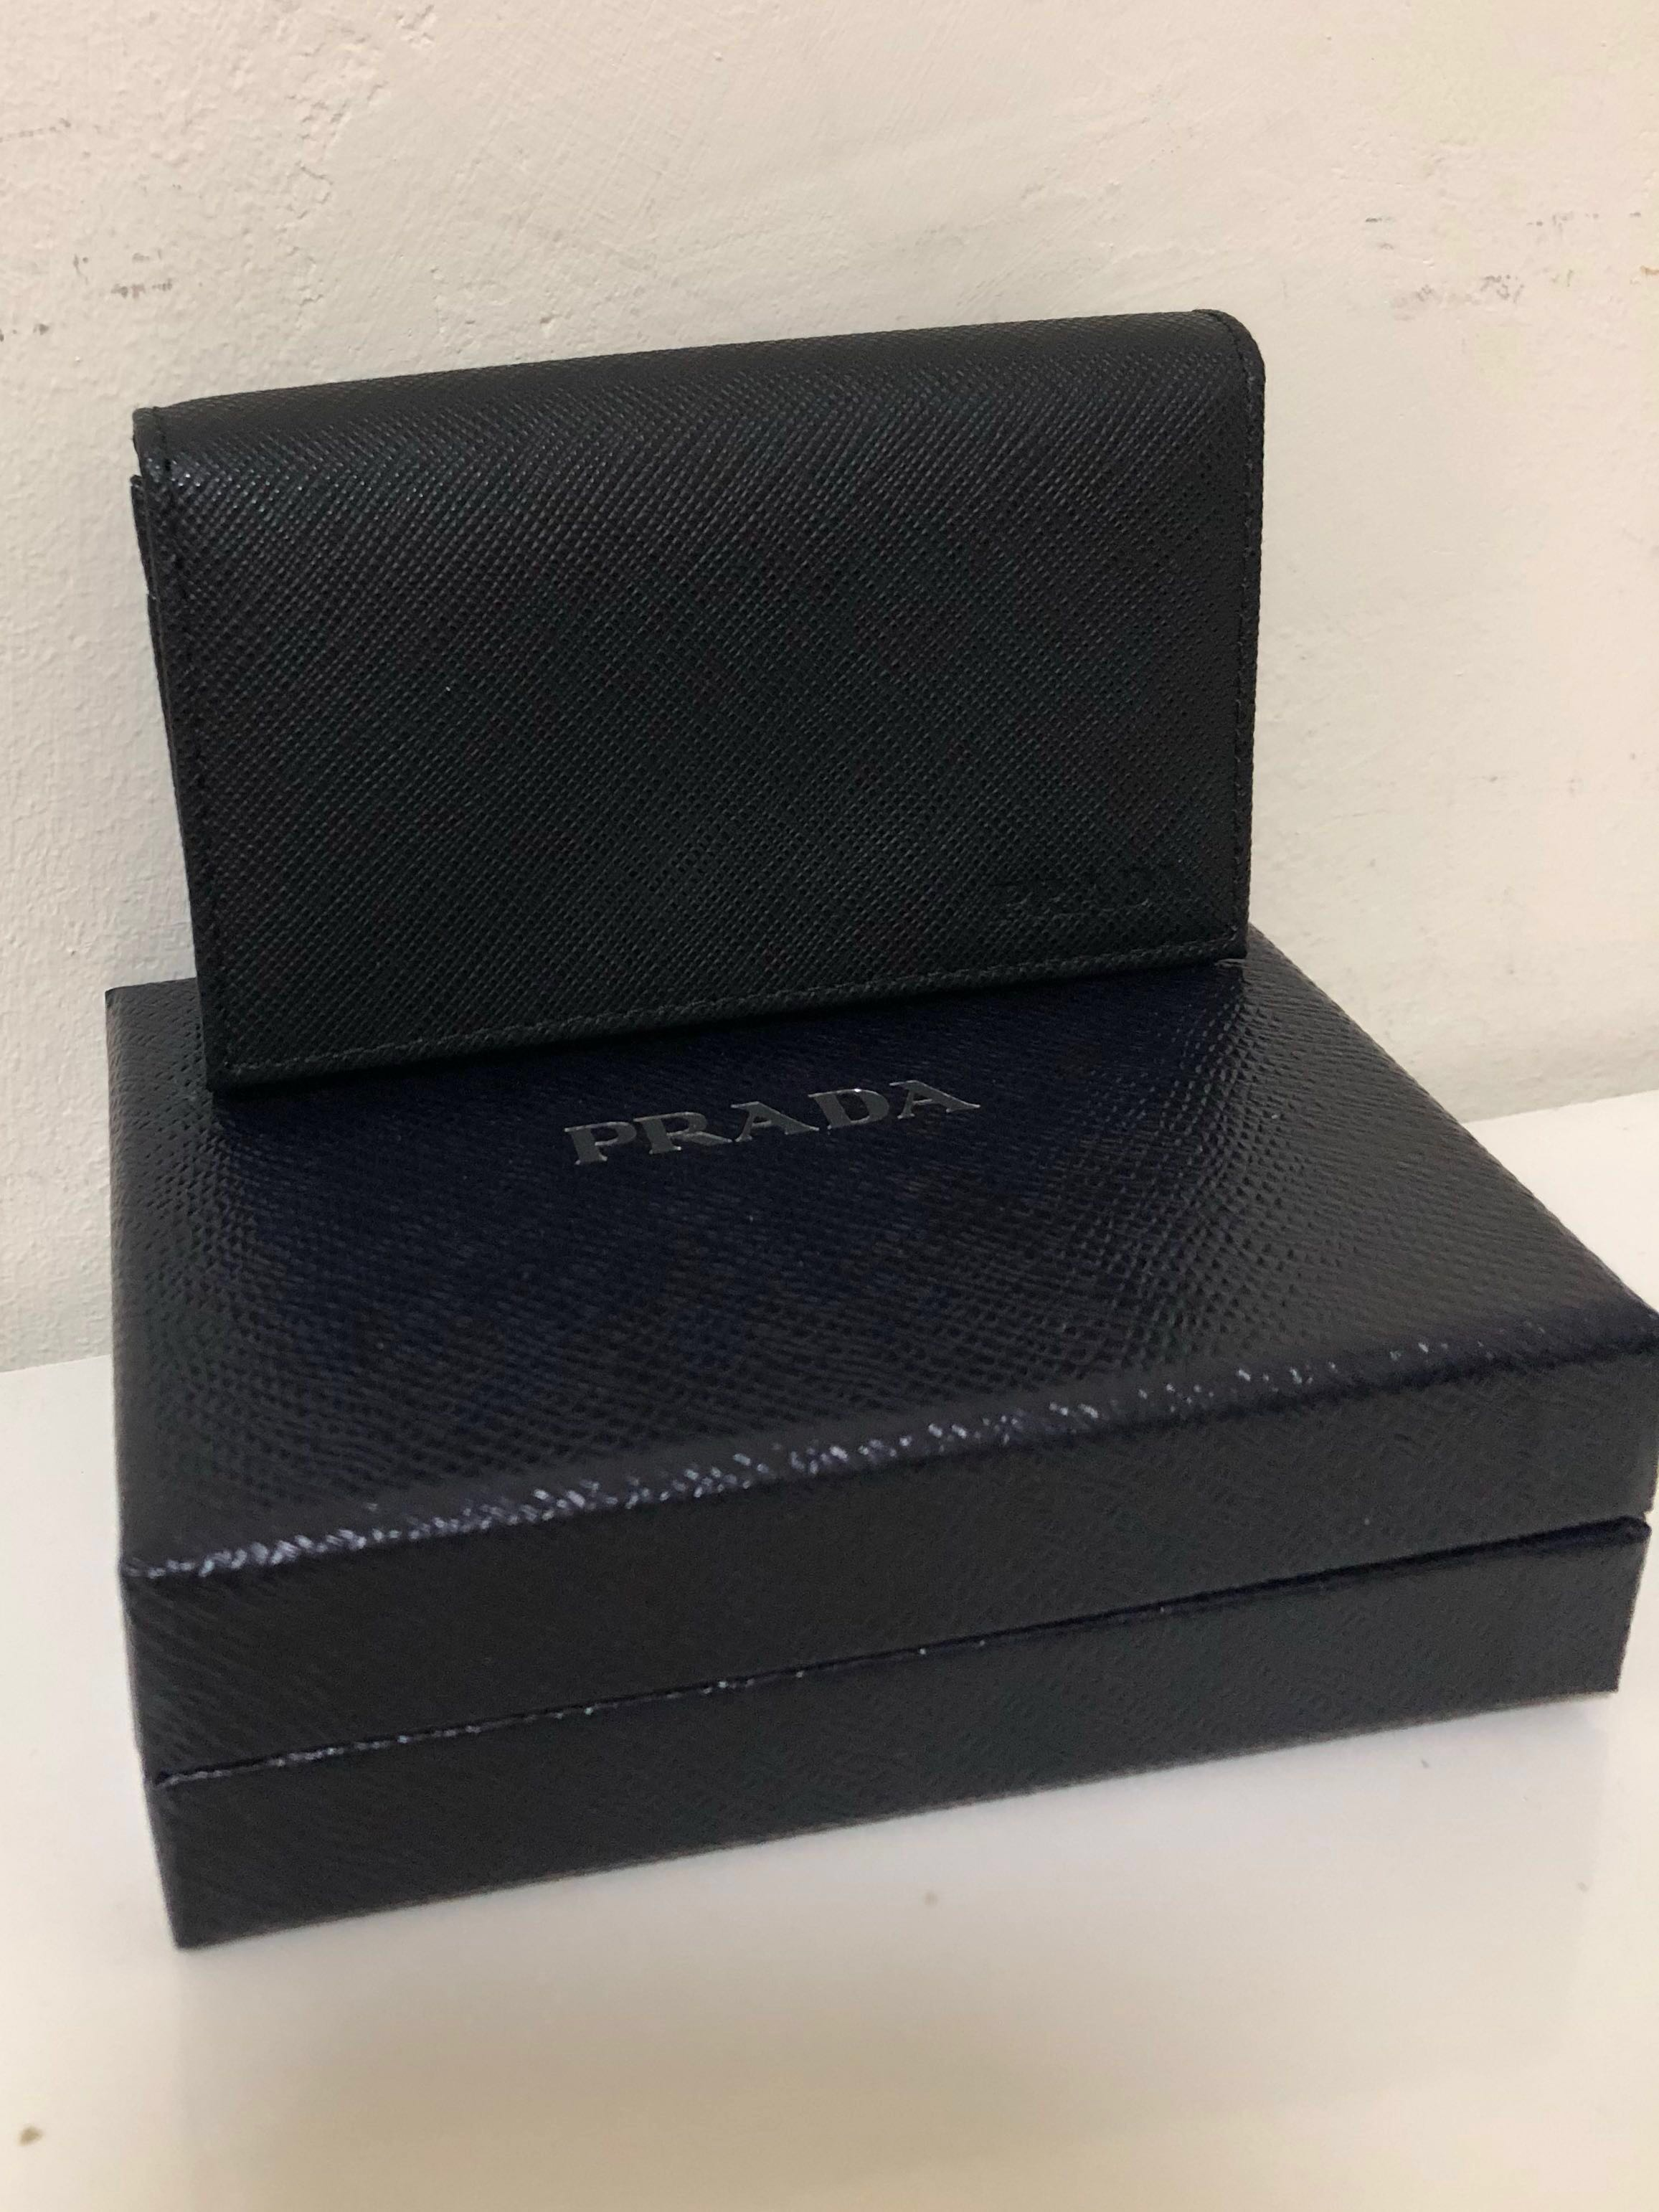 09aa41a888a8d3 CNY sales* price reduced Prada business card holder - authentic ...